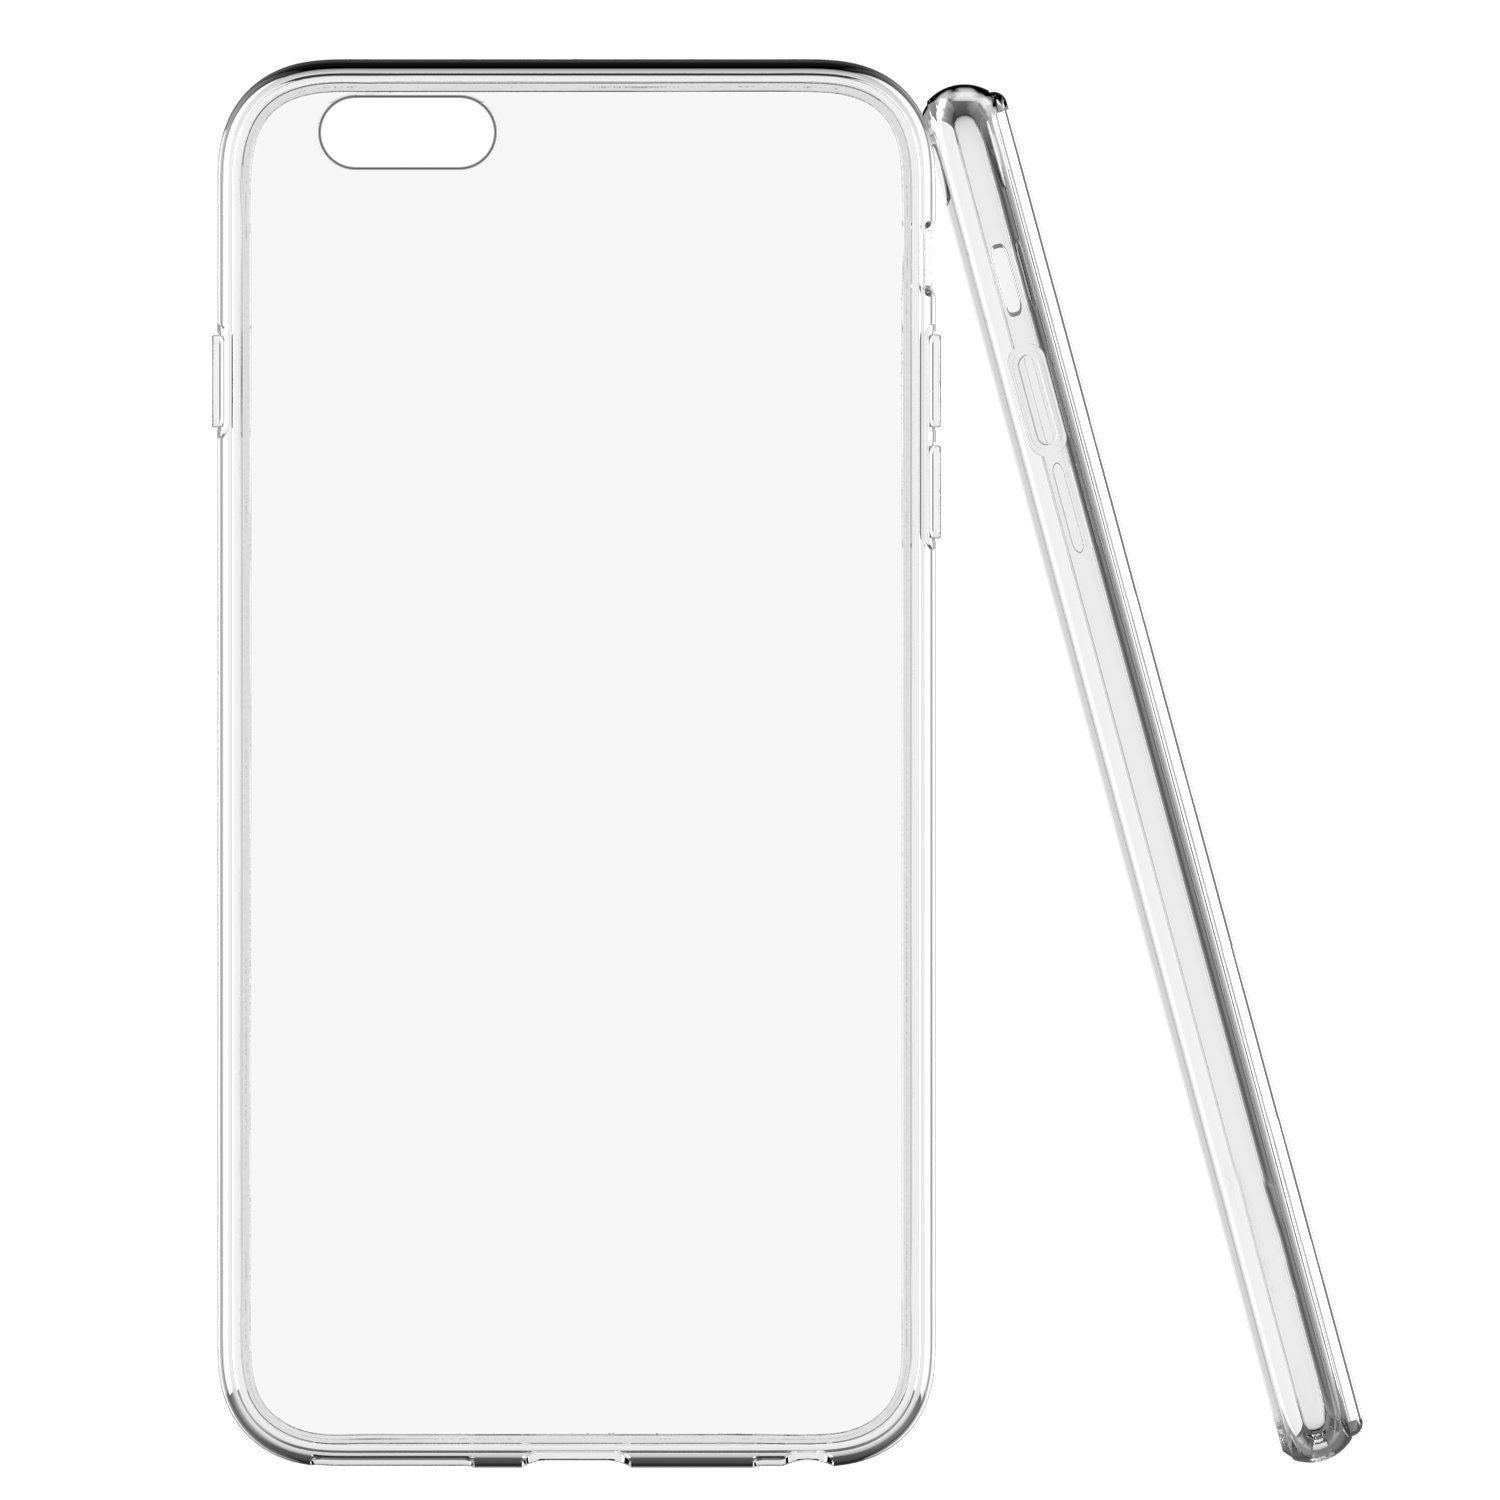 ultra slim sl soft tpu protector case for apple iphone 4g 5g 6g Apple iPhone 5S ultra slim sl soft tpu protector case for apple iphone 4g 5g 6g 6gplus 5c water clear colorless transparen back cover thin 3mm in fitted cases from